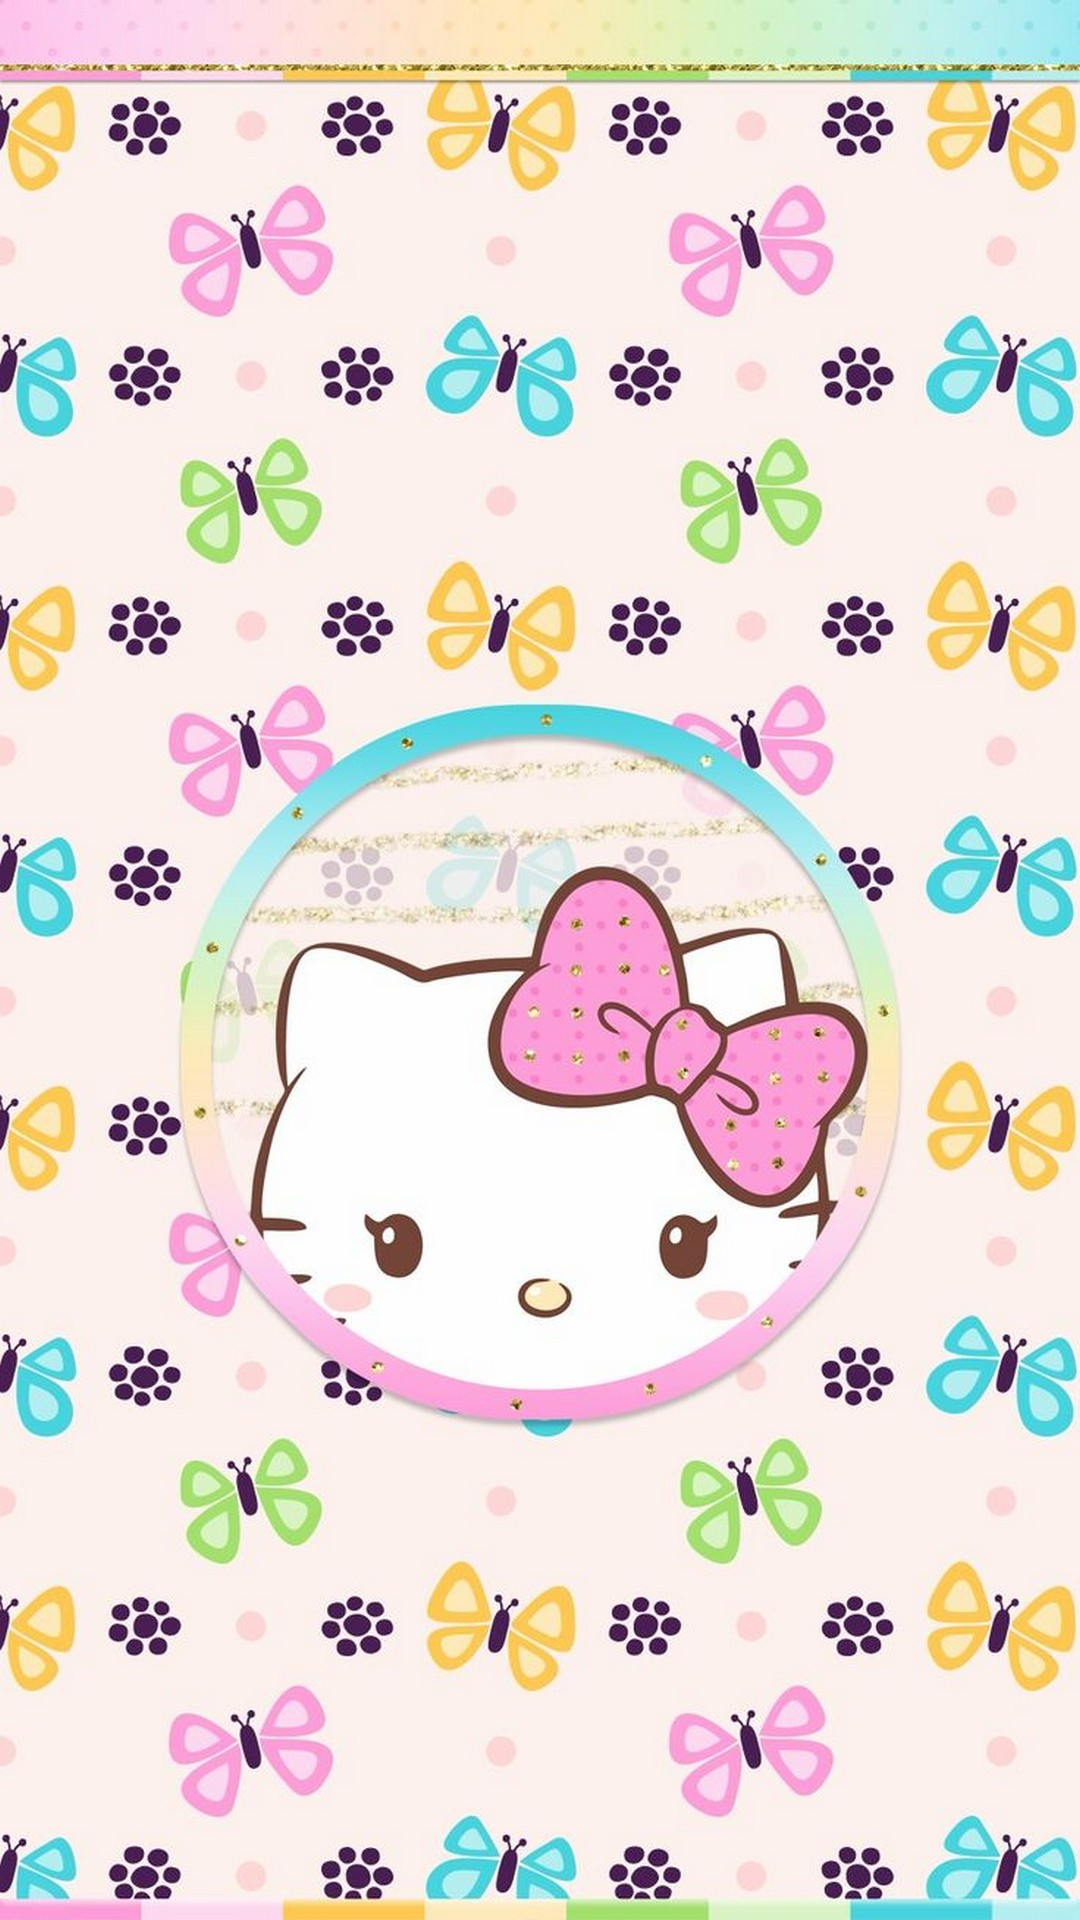 Hello Kitty Hd Wallpaper For Iphone With Image Resolution Cute